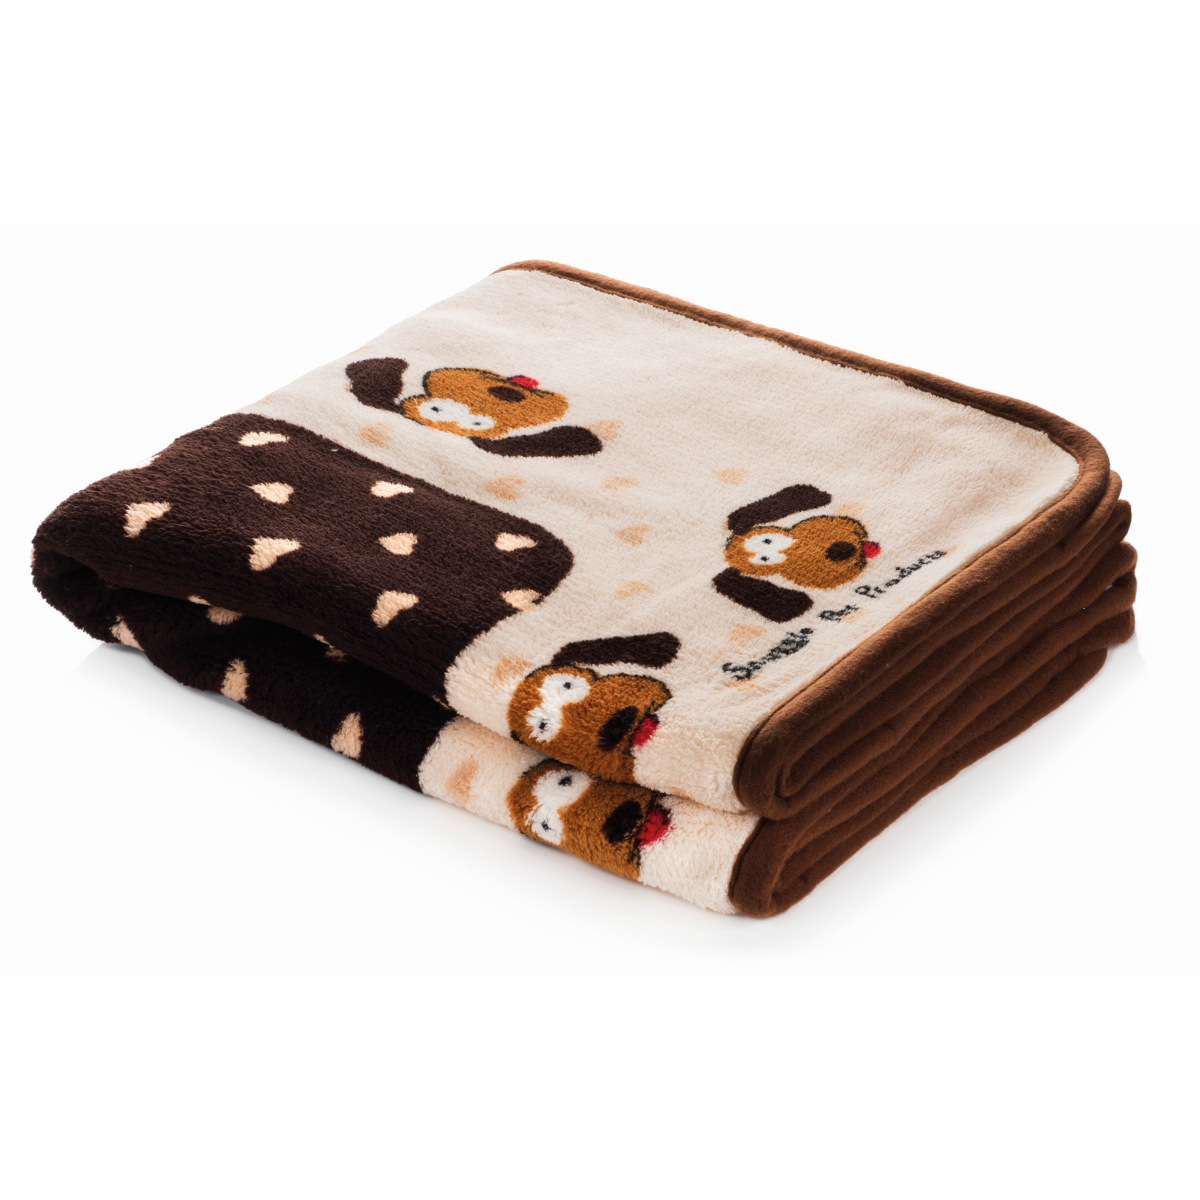 Smart pet love - snuggle blanket bruin/beige met puppy print